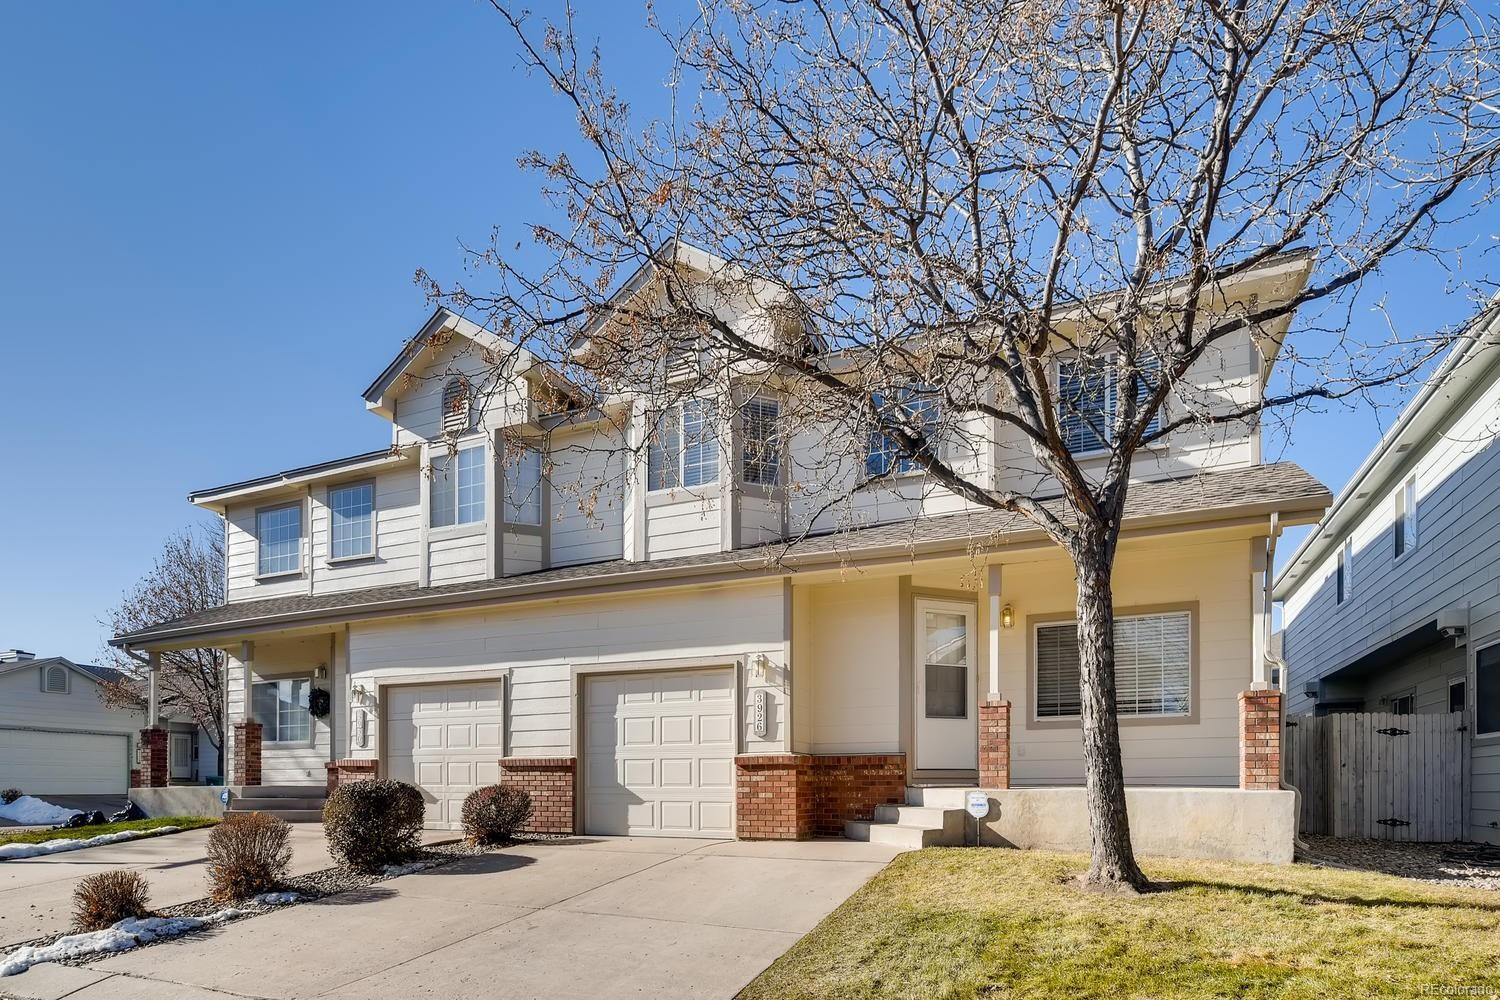 MLS# 7435178 - 2 - 3926 Christy Heights, Colorado Springs, CO 80906